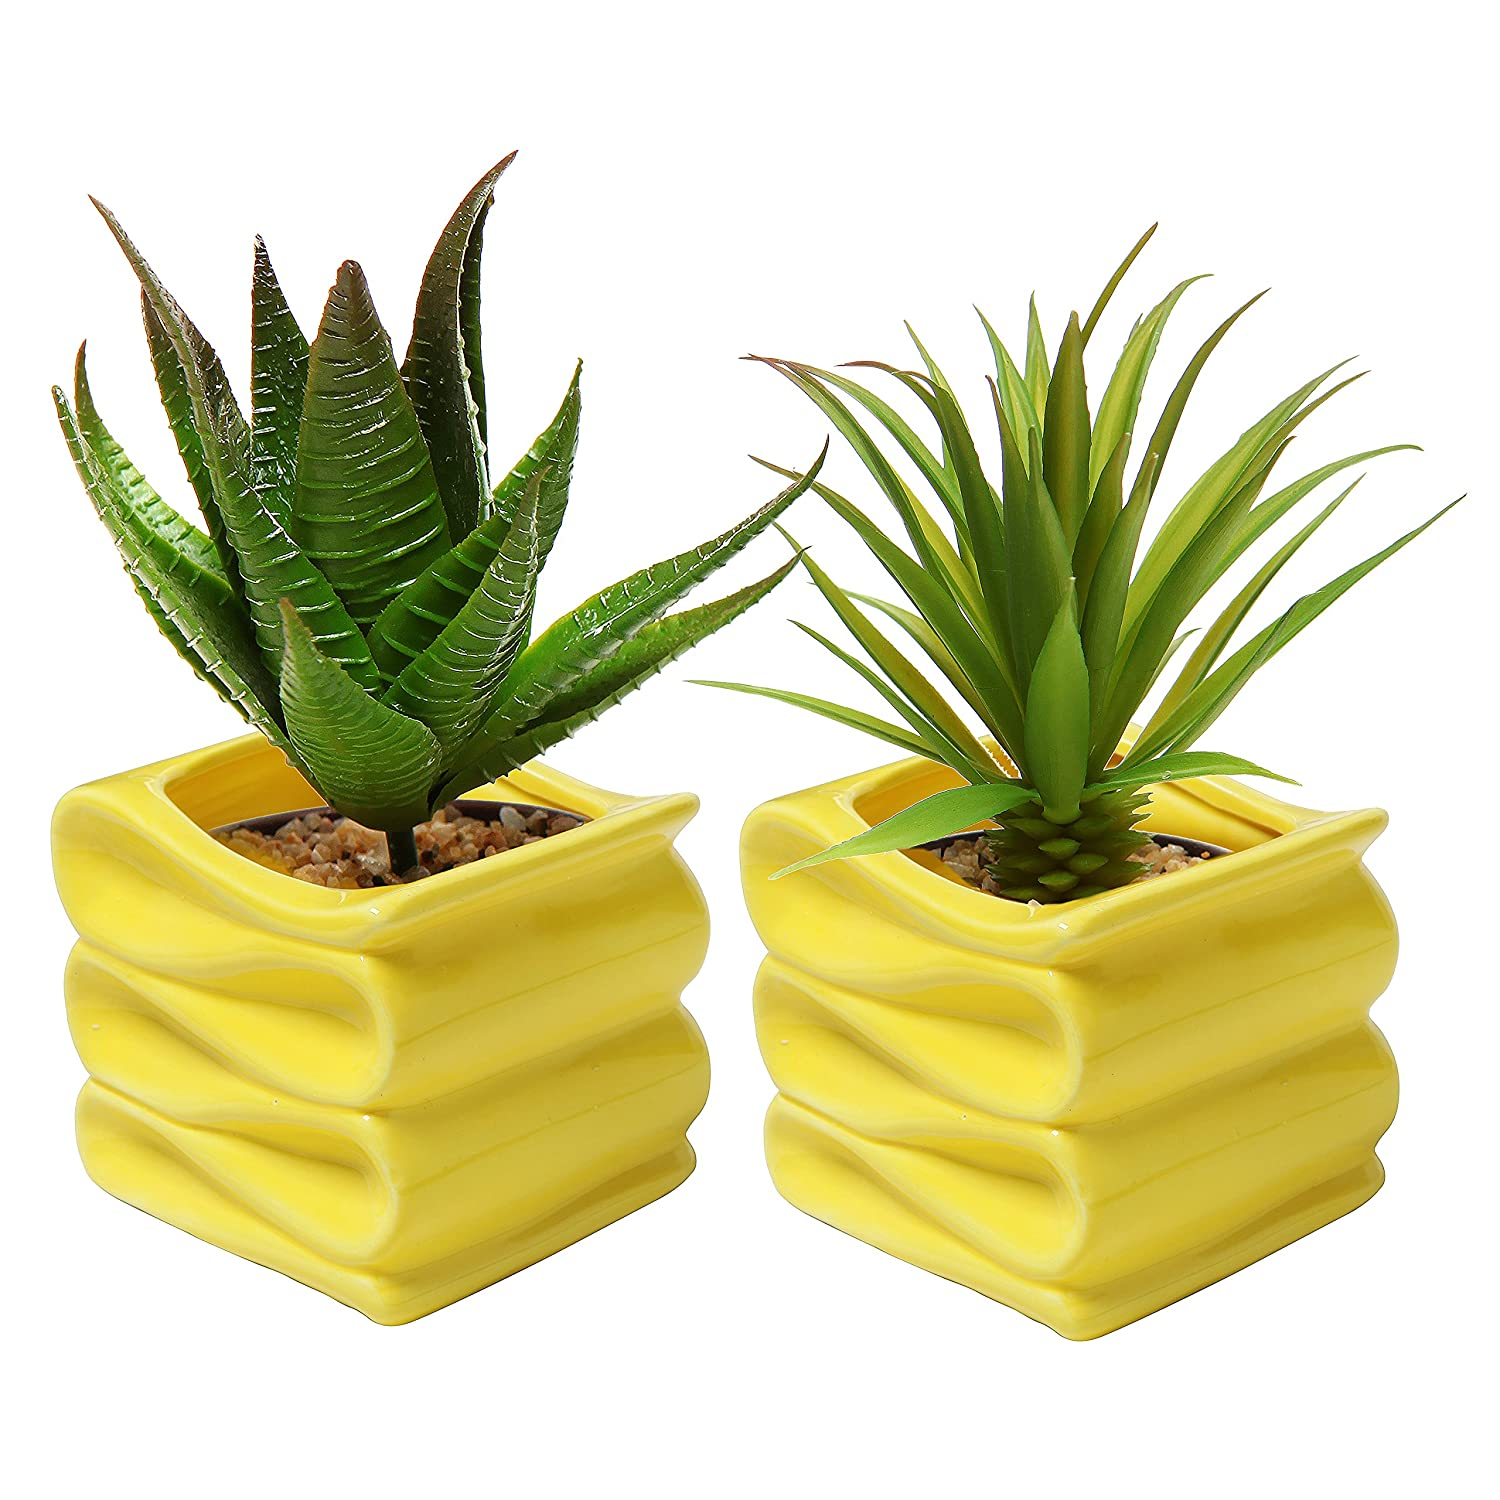 MyGift Set of 2 Modern Decorative Folded Design Small Ceramic Plant Pot/Flower Planter - Yellow